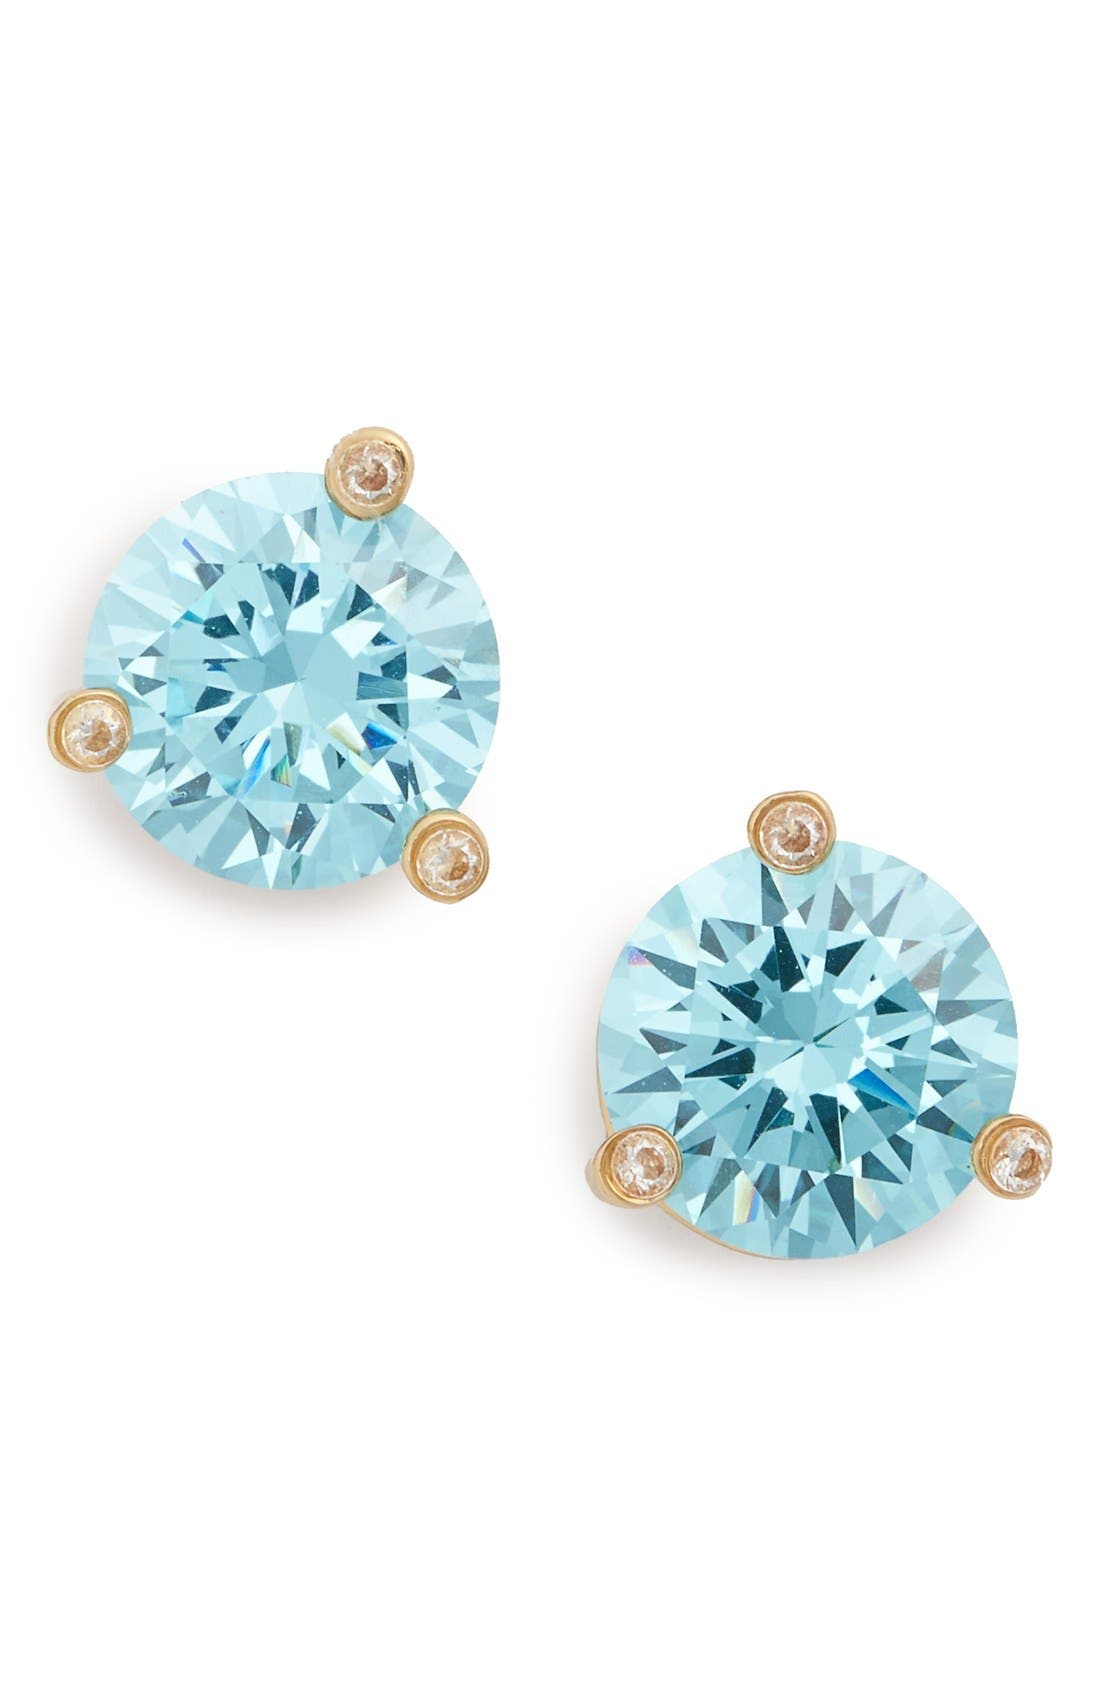 Main Image - kate spade new york 'rise and shine' stud earrings